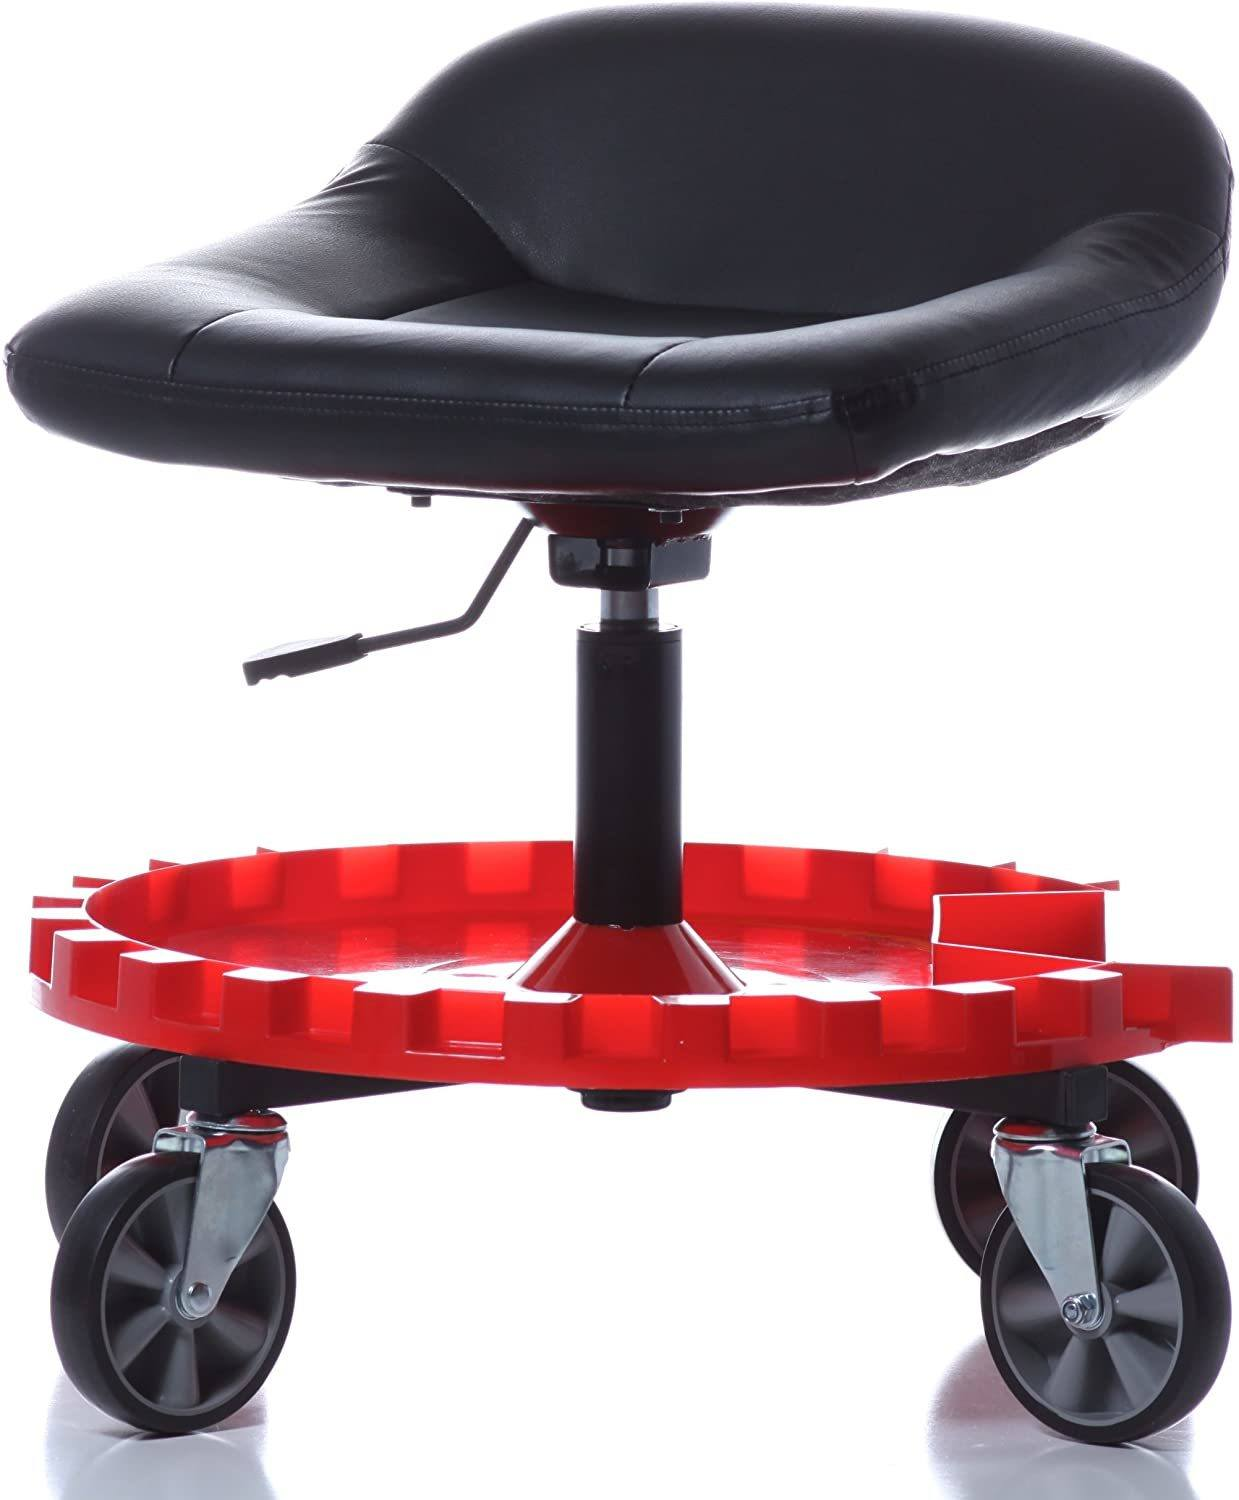 traxion 2 230 garden scooter image